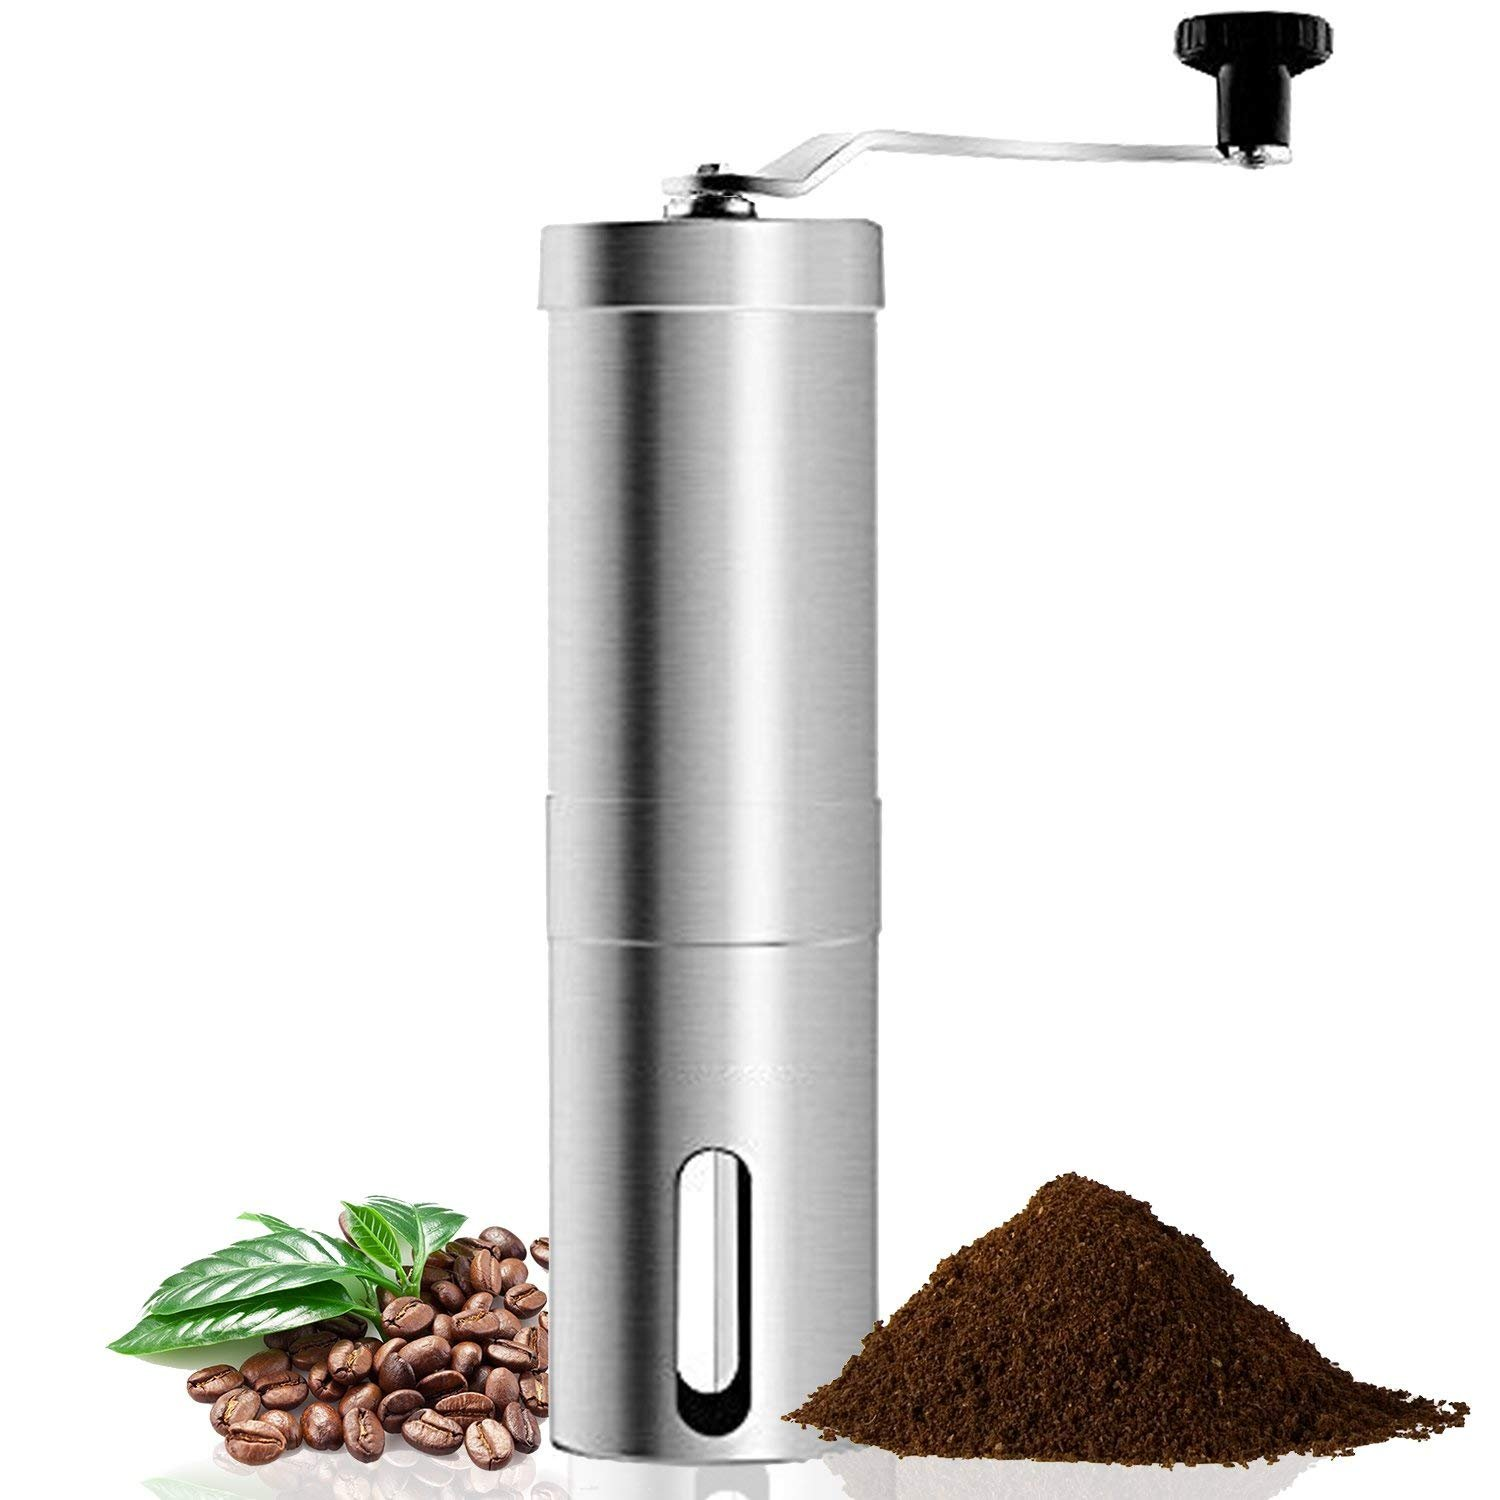 Coffee Grinder Burr Manual Coffee-Grinder